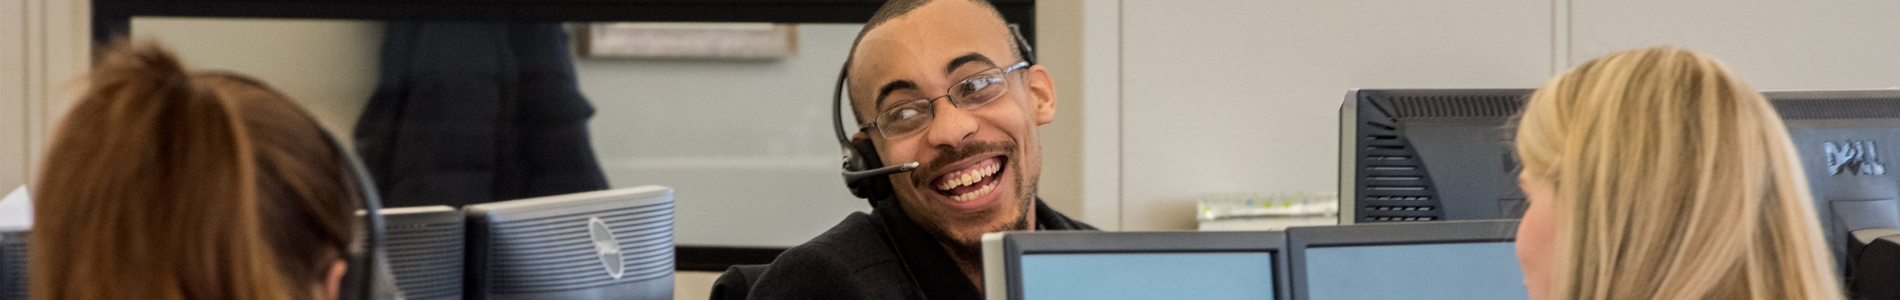 Man smiling at his desk